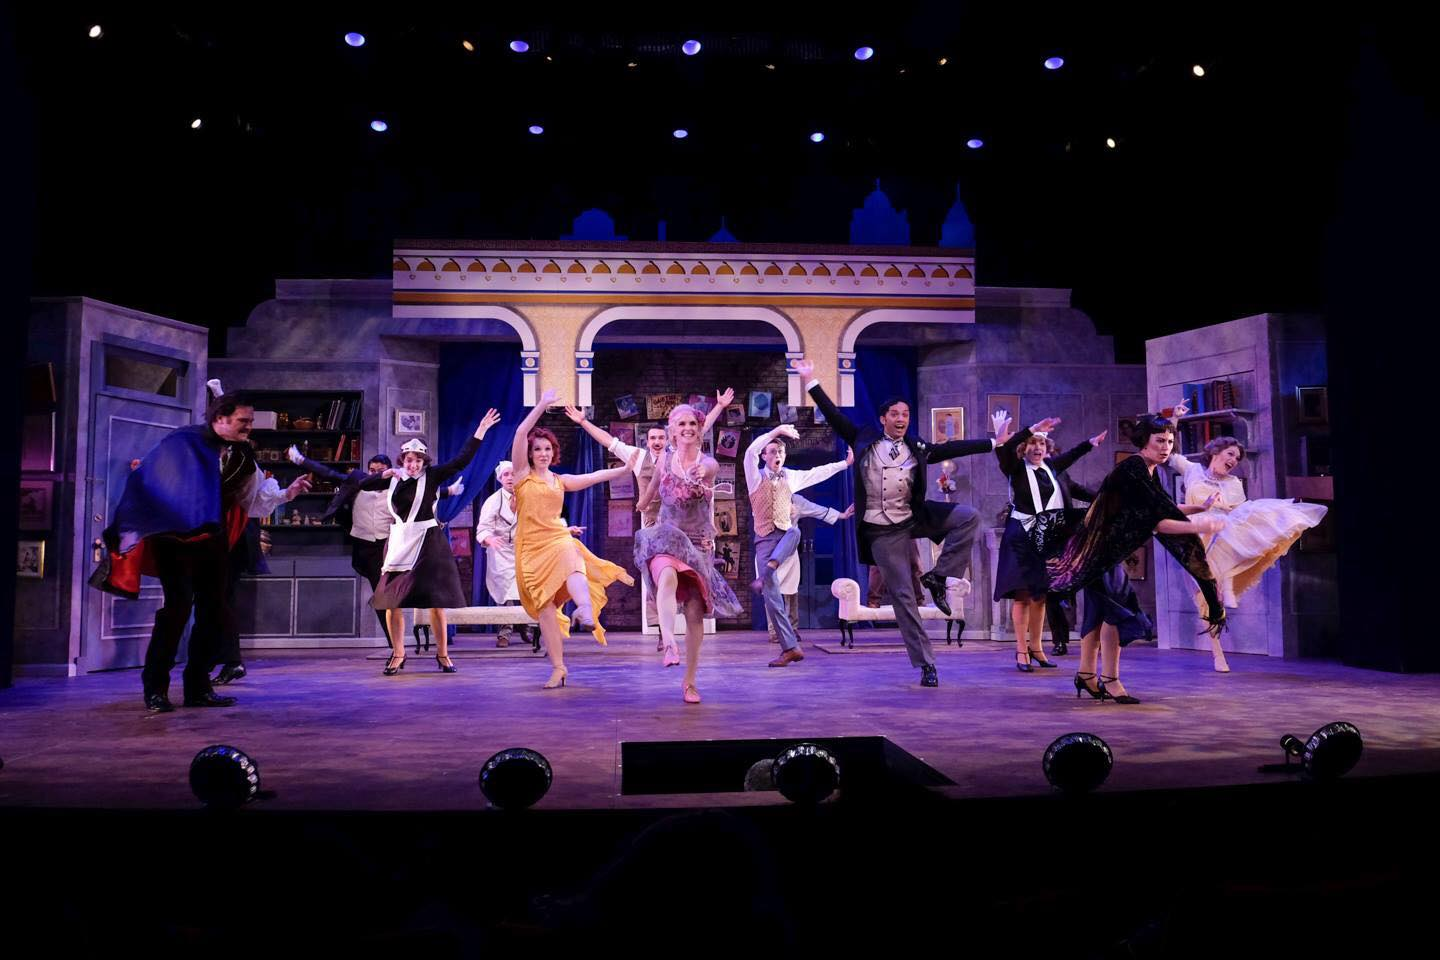 drowsy chaperone √ sets √ props √ costumes √ backdrops mtwrentals very much looks forward to working with you before actively pursuing a rental, please click on our rental.